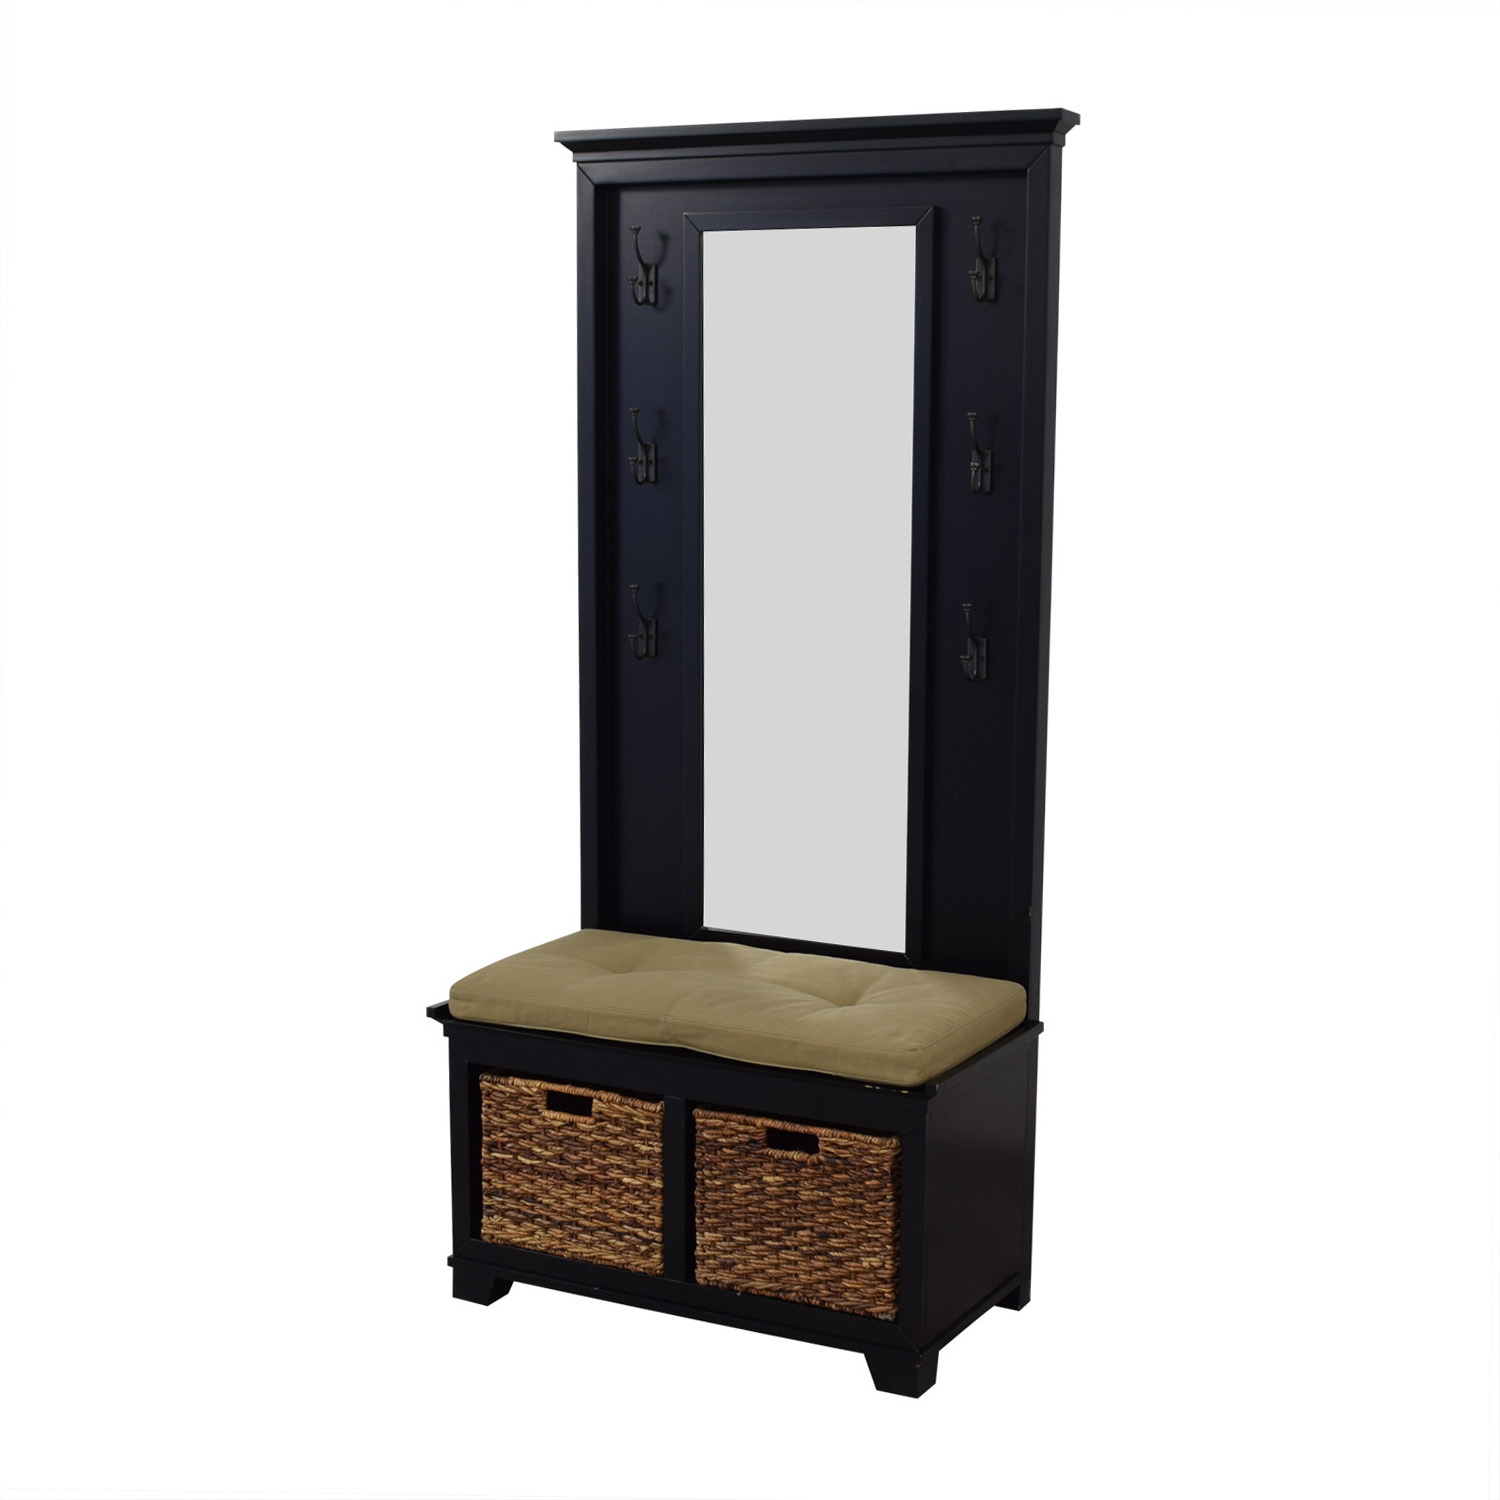 Crate & Barrel Crate & Barrel Windham Bench and Mirrored Panel for sale